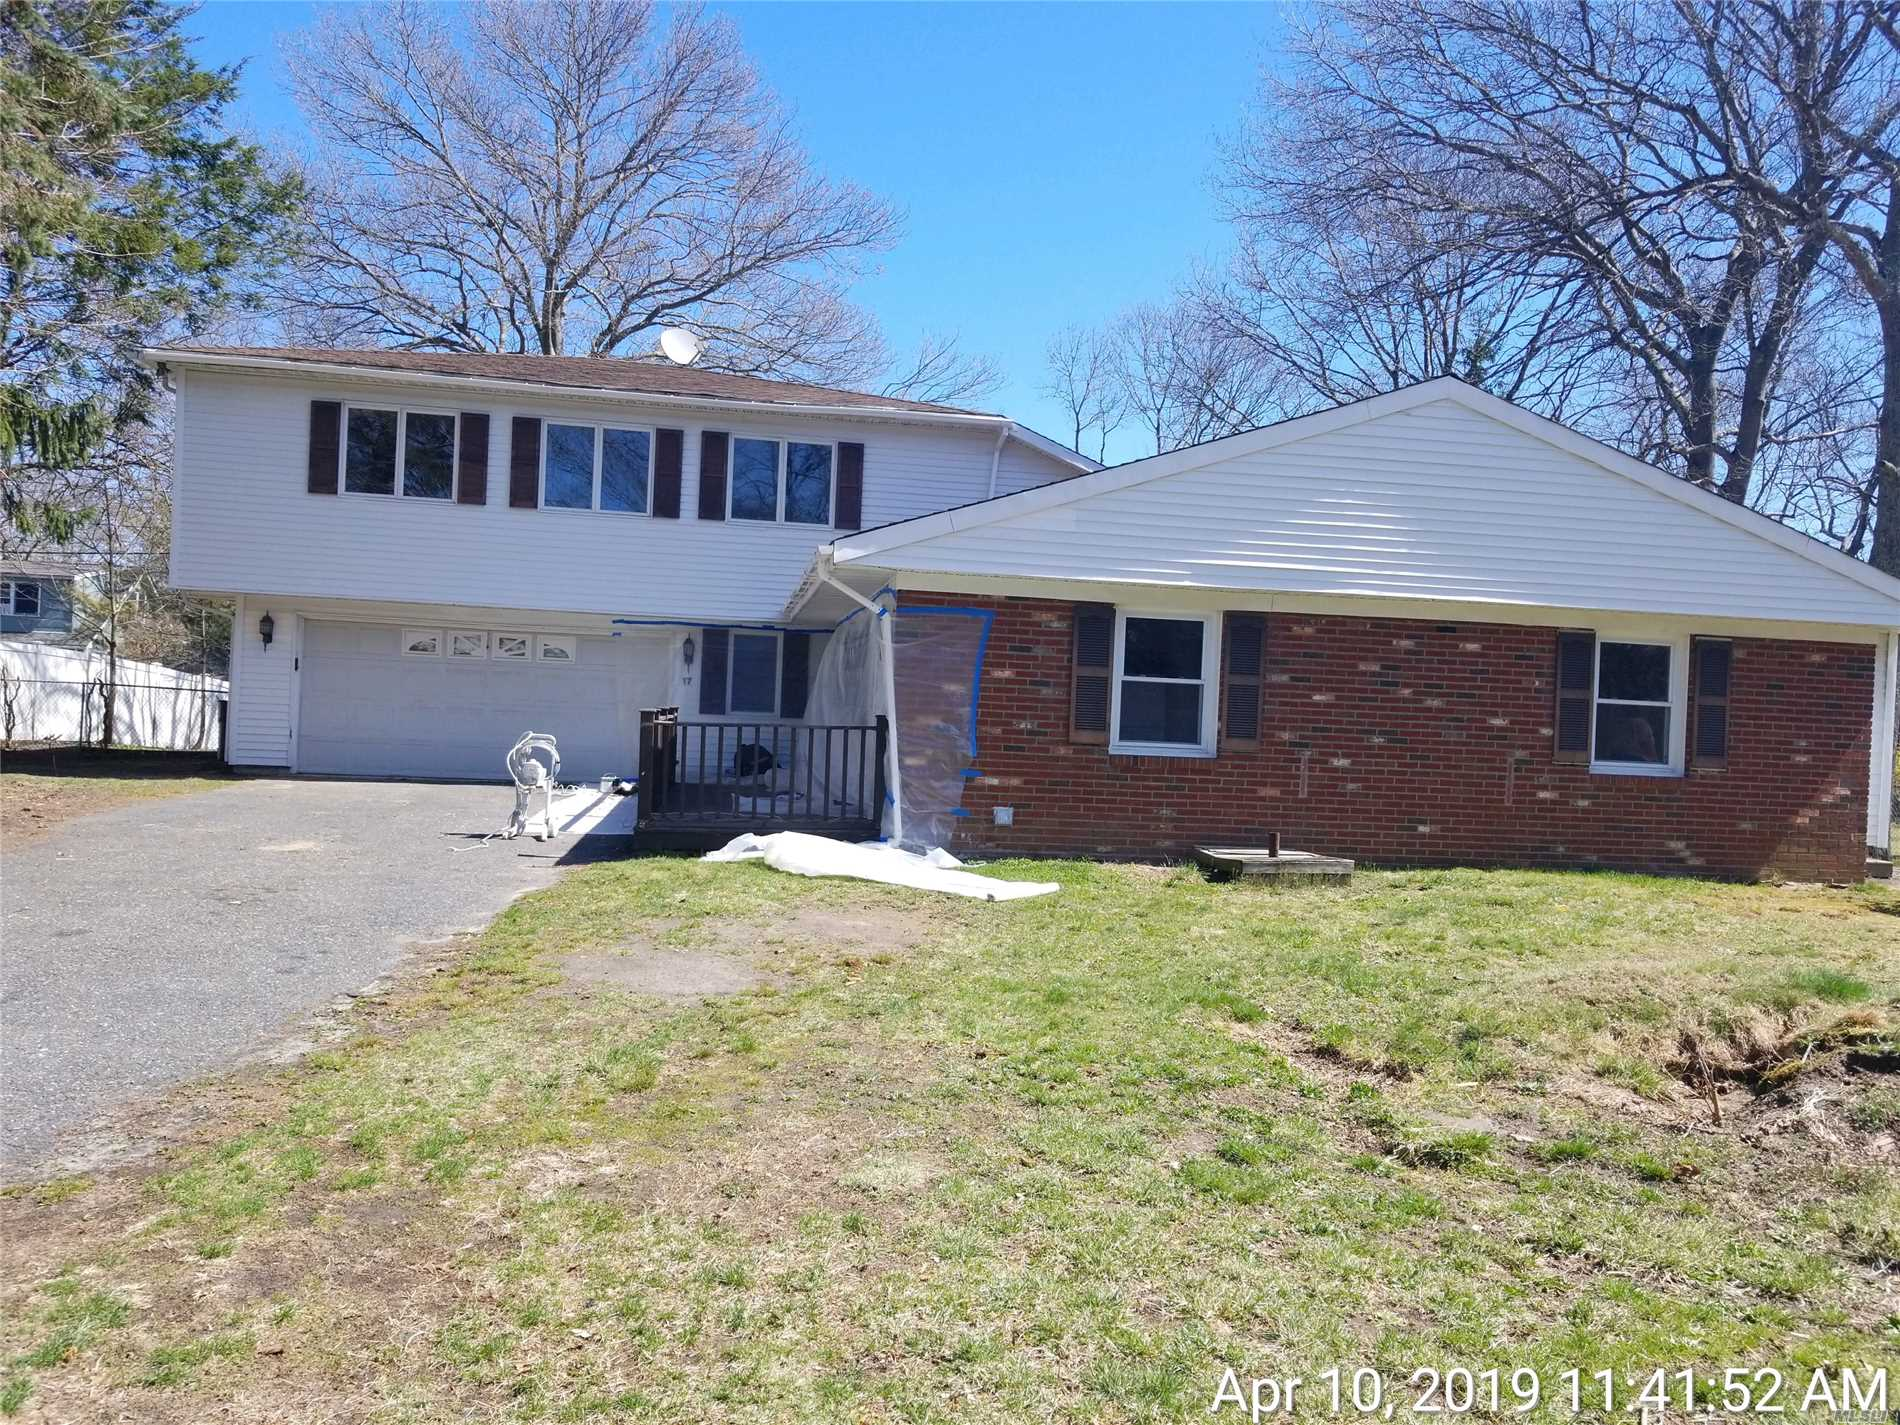 One Family w/ Accessory Apt check local permits and zoning. Very large home with 5 bedrooms 3 full bathroom 2 car garage and large fenced yard. Great for large family or income potential. This house is priced to sell, Will not last! Come see it today!